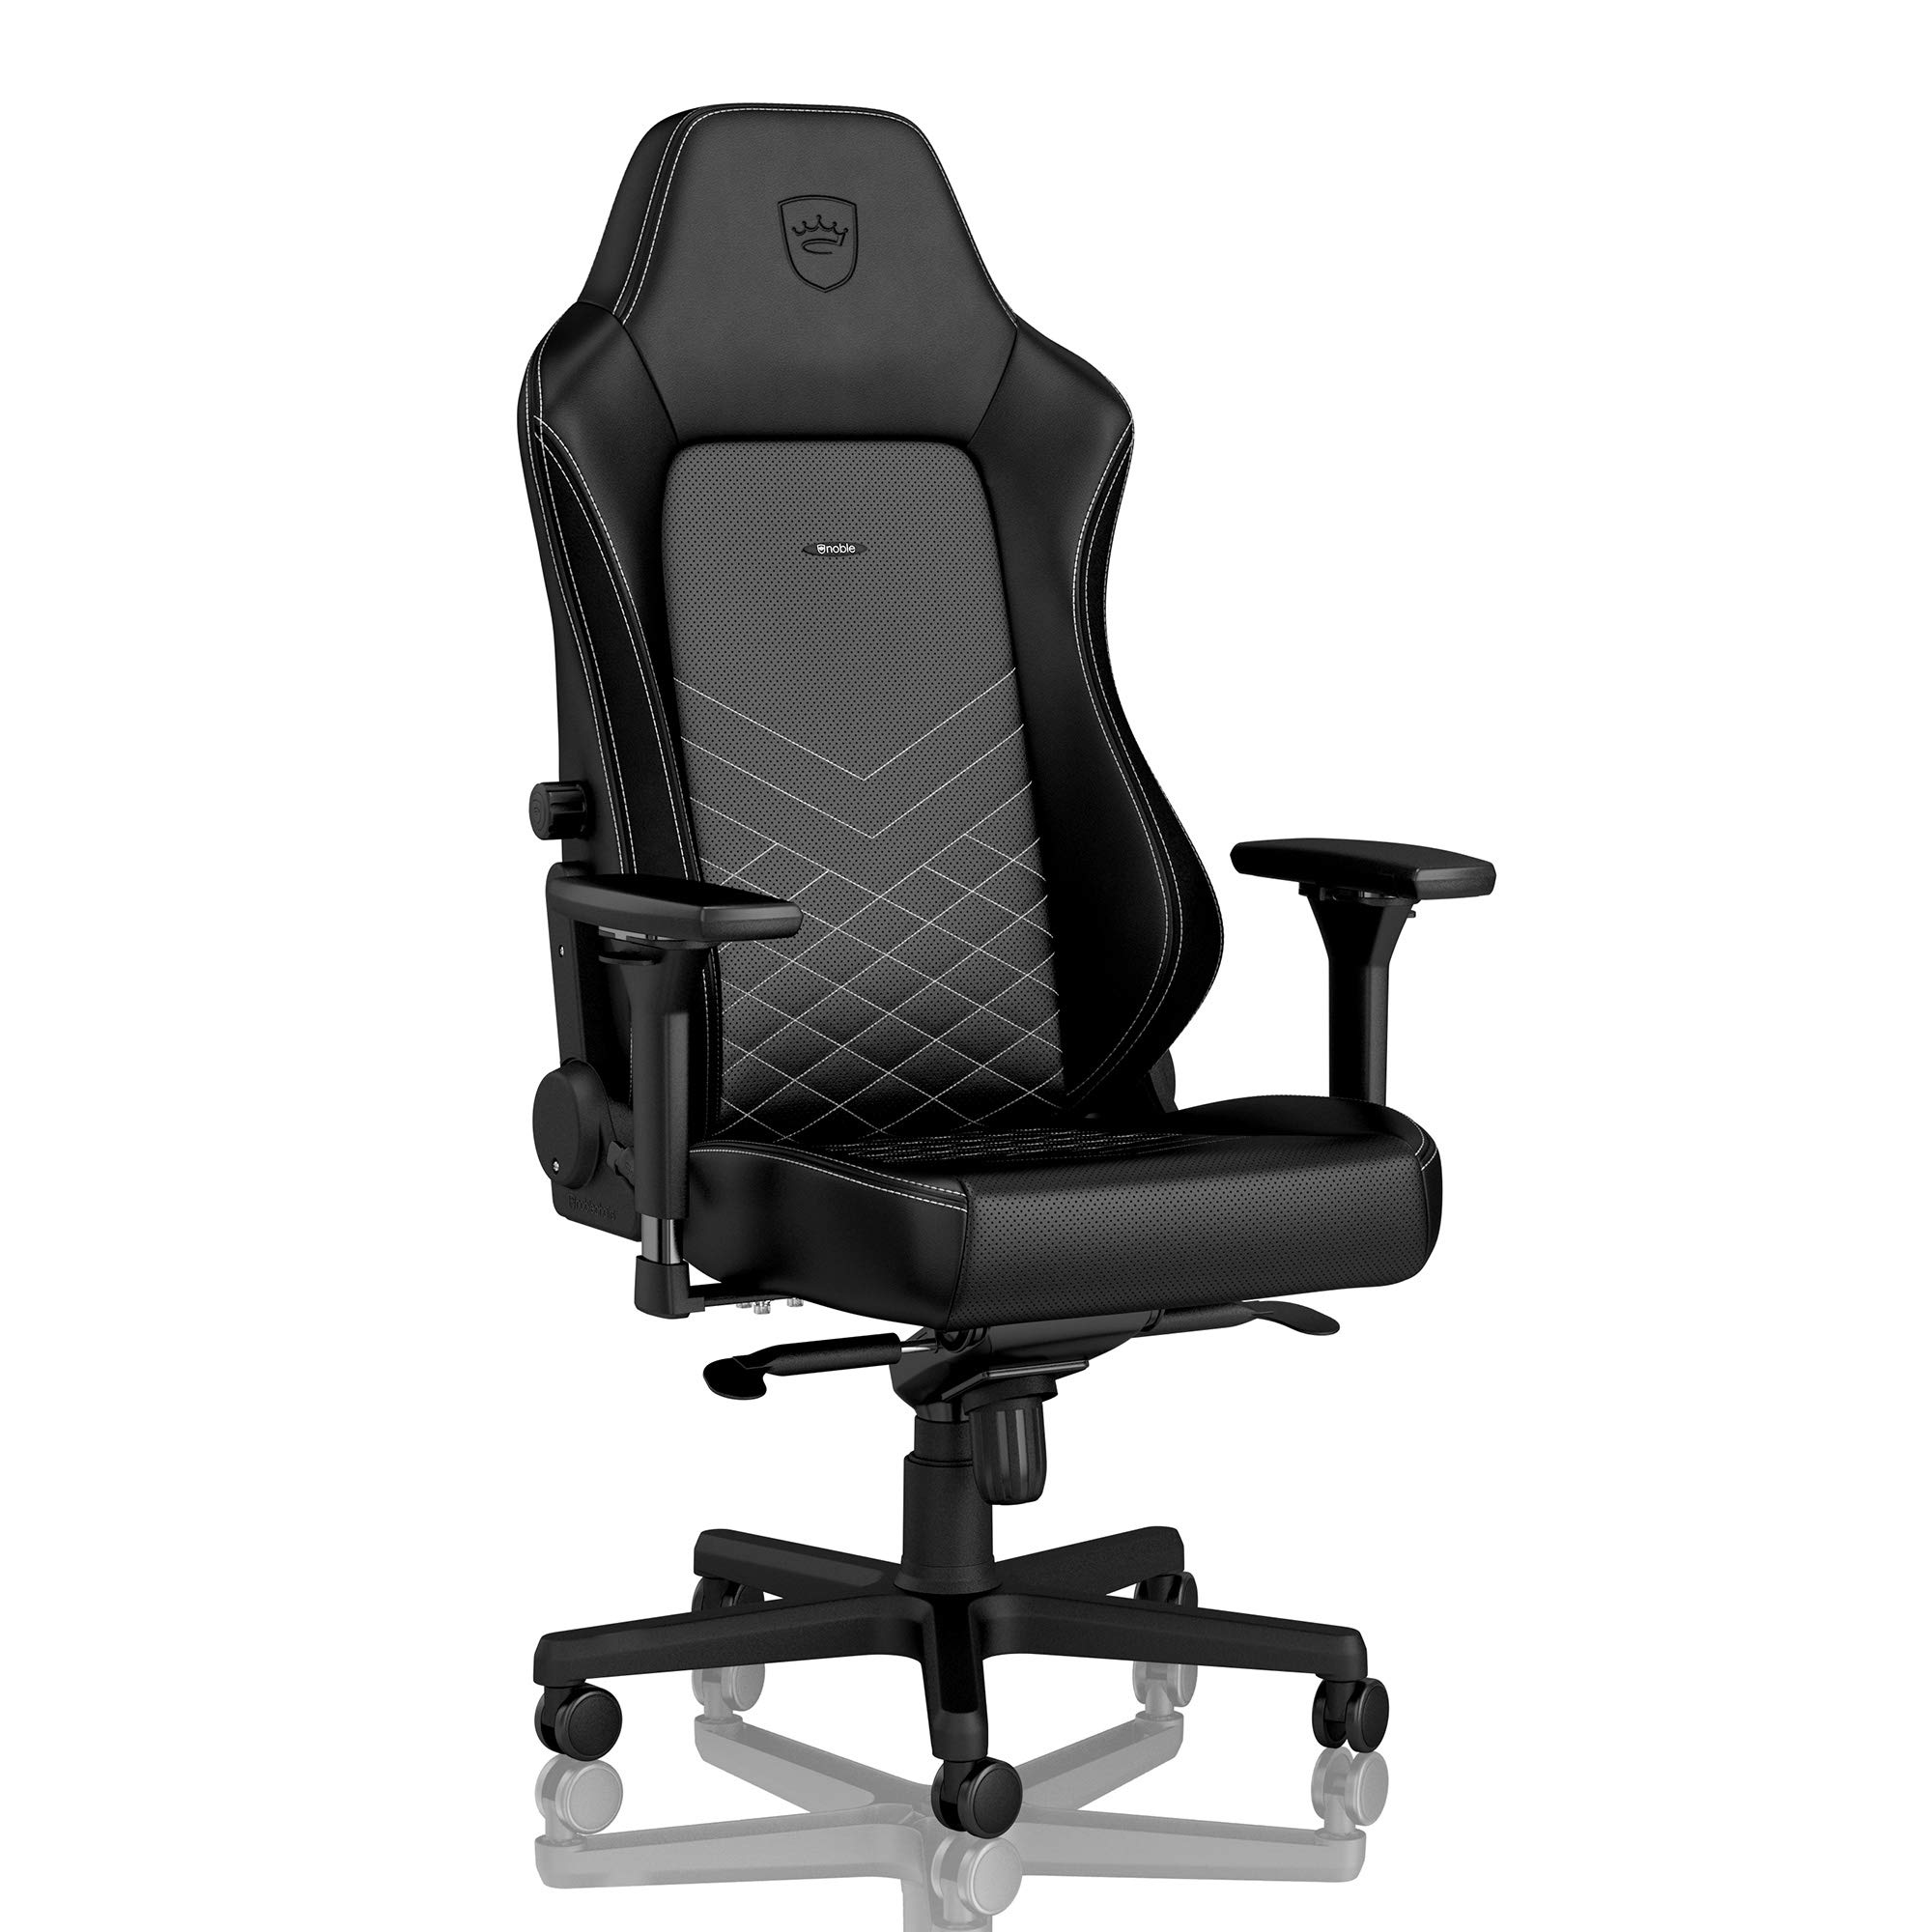 noblechairs Hero Gaming Chair - Office Chair - Desk Chair - PU Leather - 330 lbs - 135° Reclinable - Lumbar Support - Racing Seat Design - Black/Platinum White